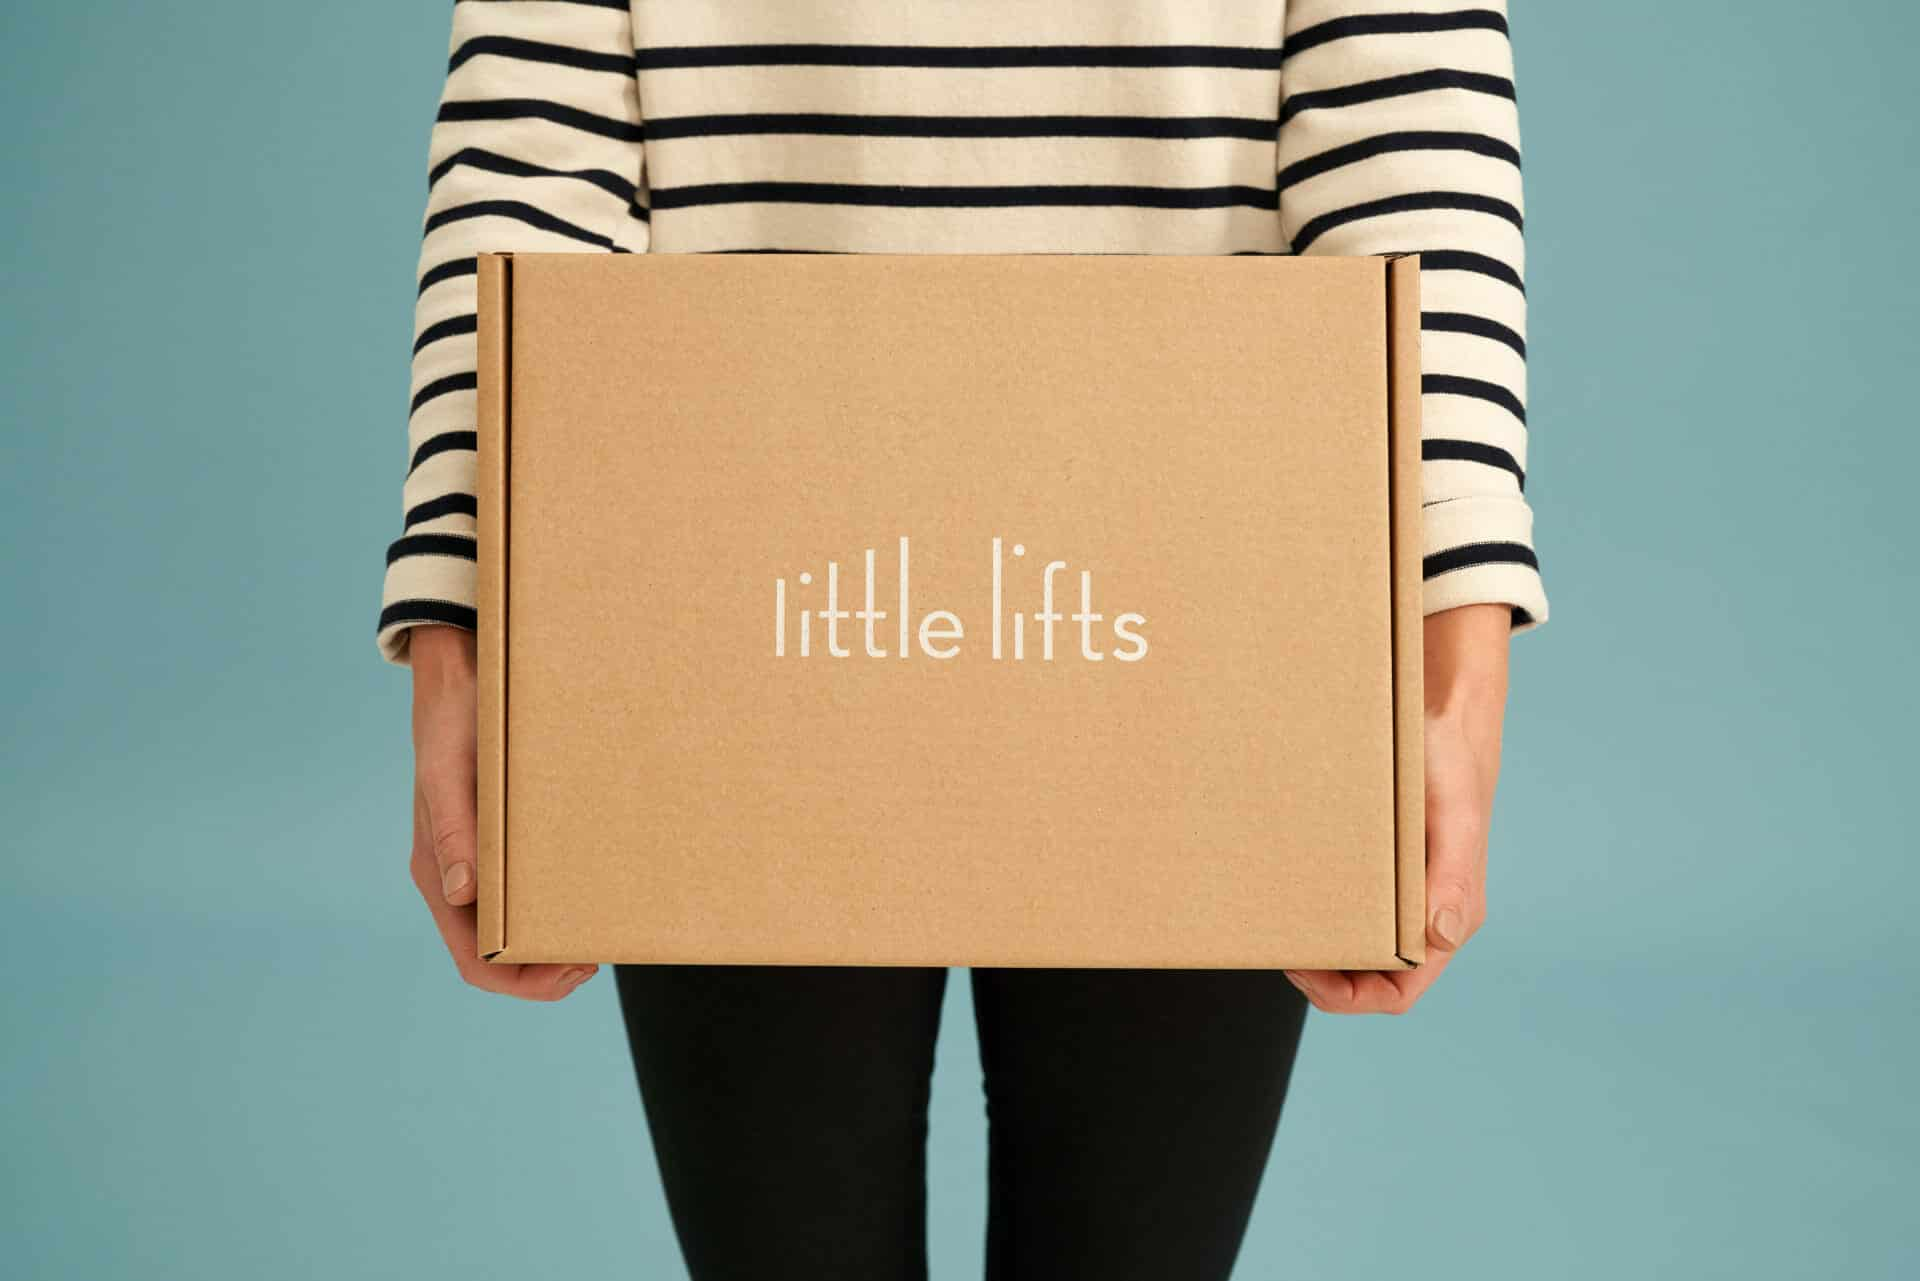 Our signature littlelifts box